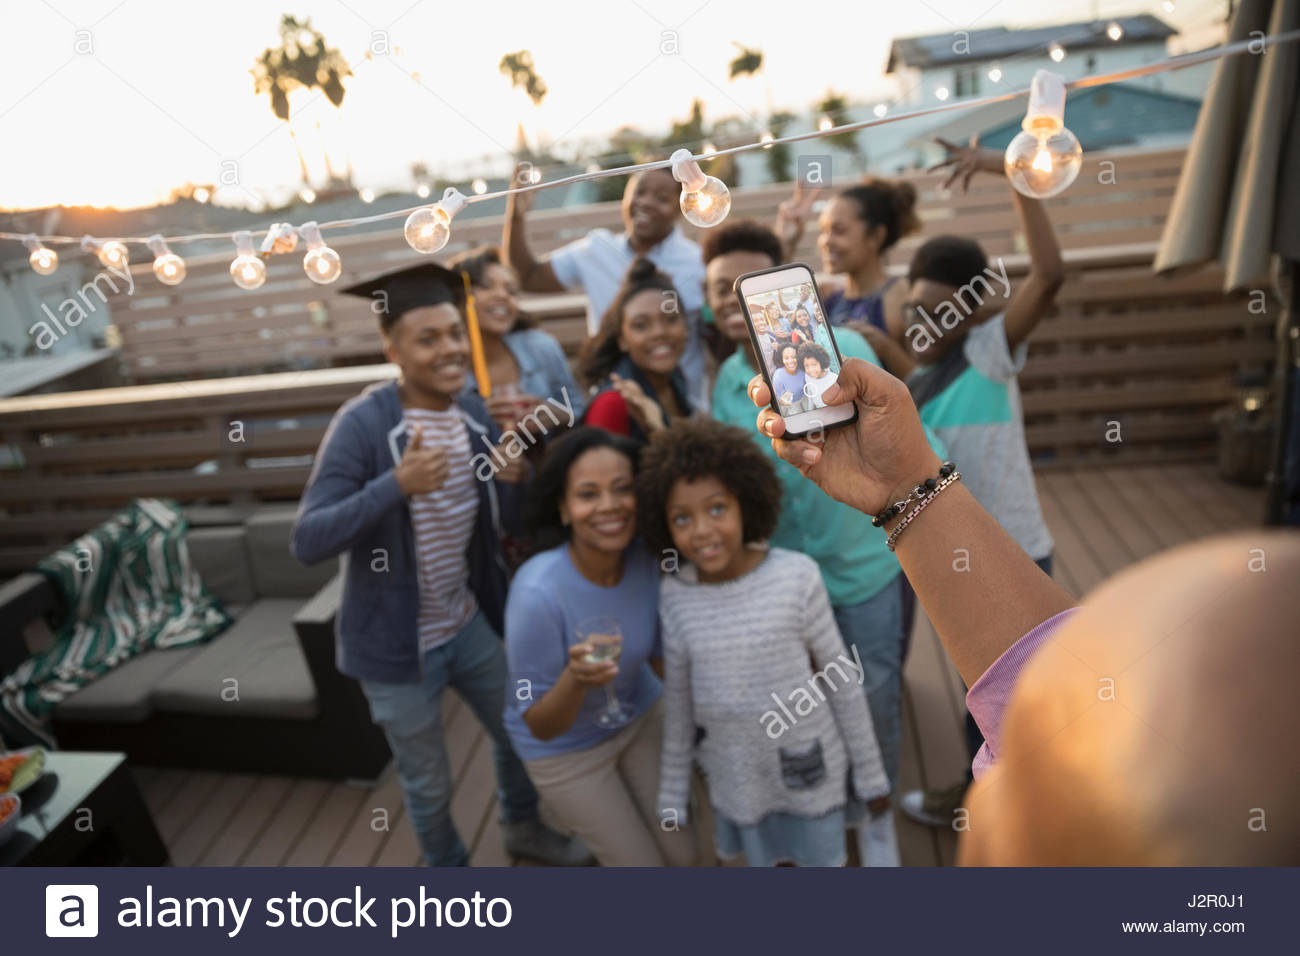 Father with camera phone photographing family celebrating graduation on summer deck - Stock Image